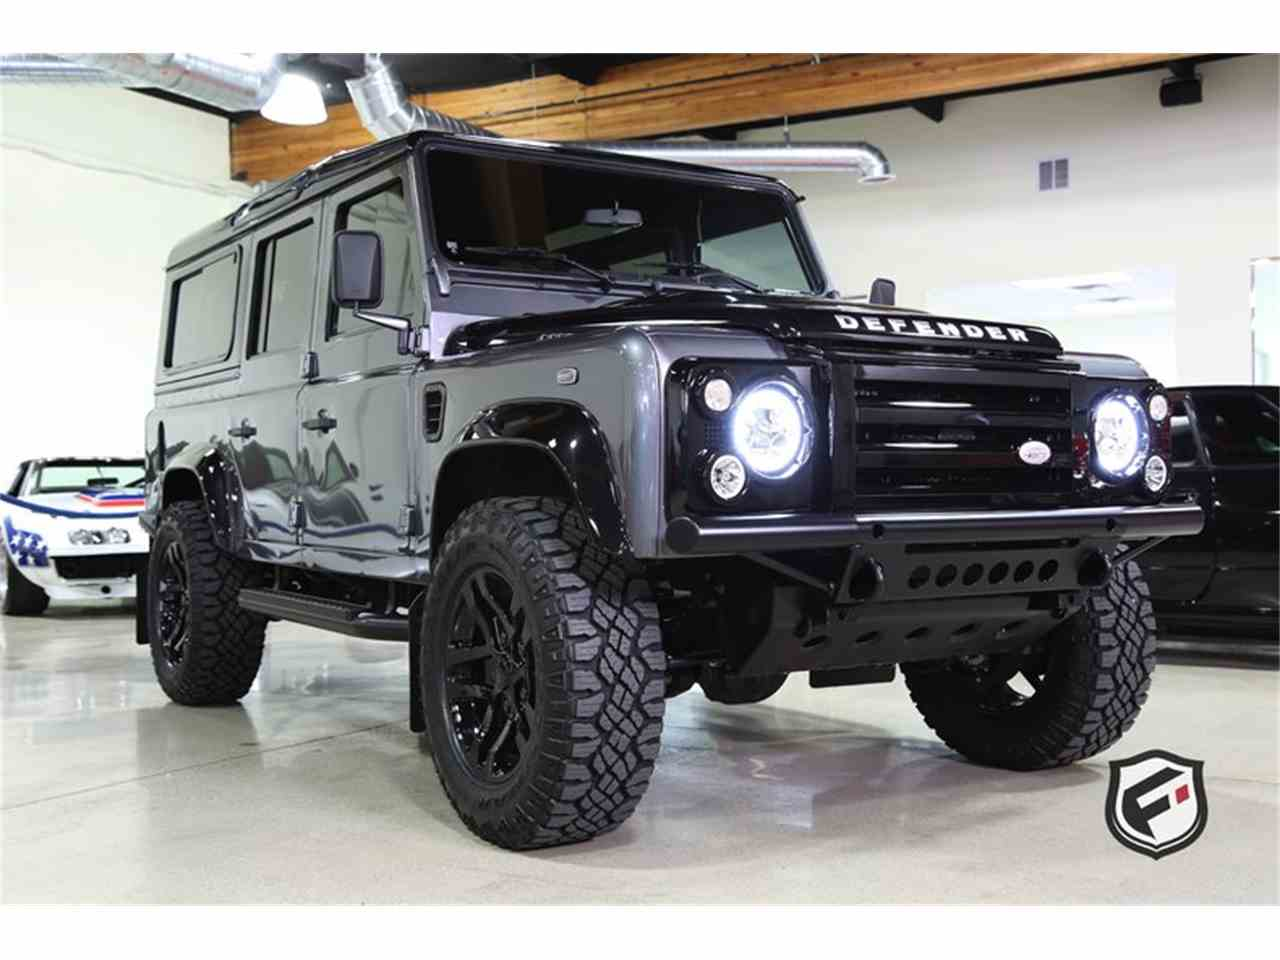 Large Picture of 1994 Land Rover Defender located in Chatsworth California Auction Vehicle Offered by Fusion Luxury Motors - JSI7